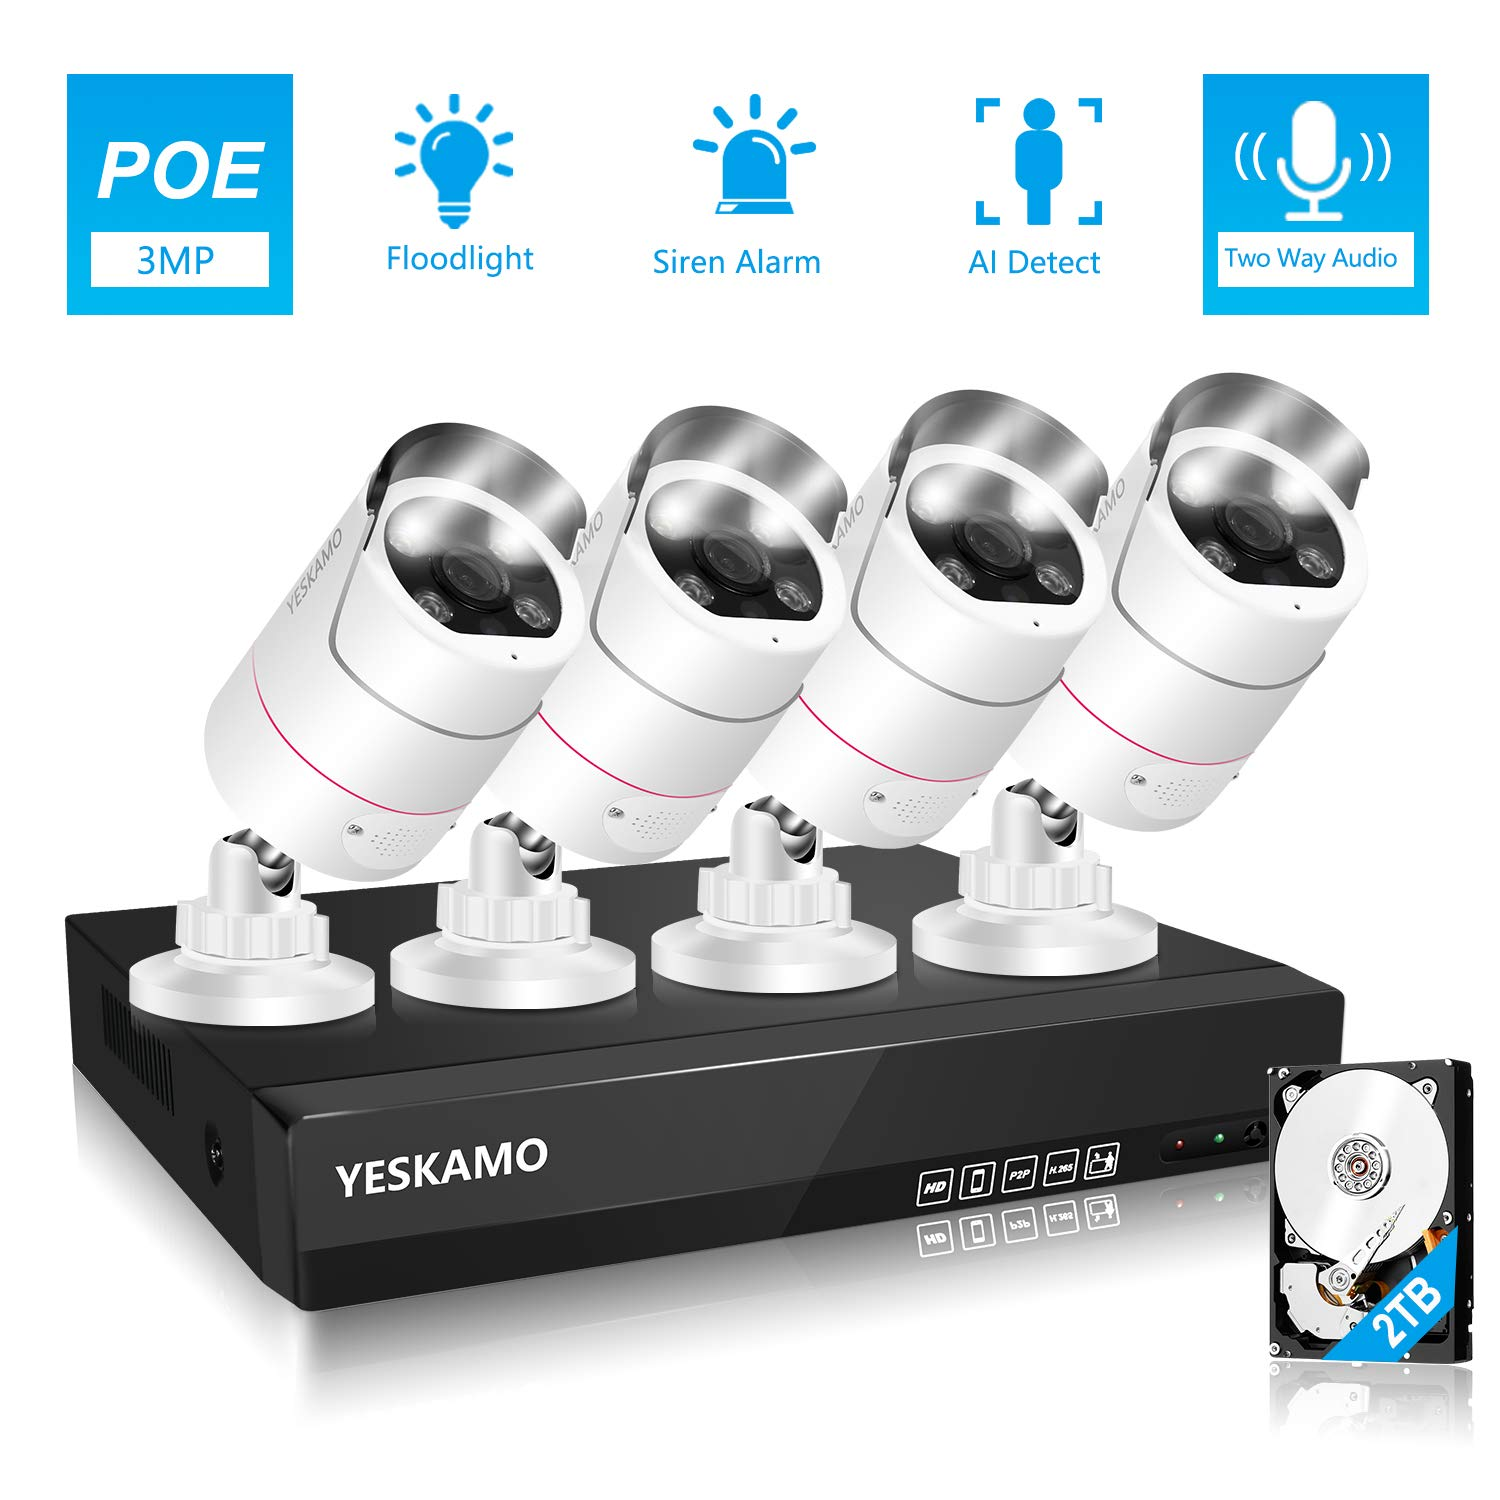 YESKAMO PoE Outdoor Home CCTV Camera System with Floodlight & 2 Way Audio 5K 8ch NVR 4pcs 3MP Spotlight Security IP Cameras with 2TB Hard Drive